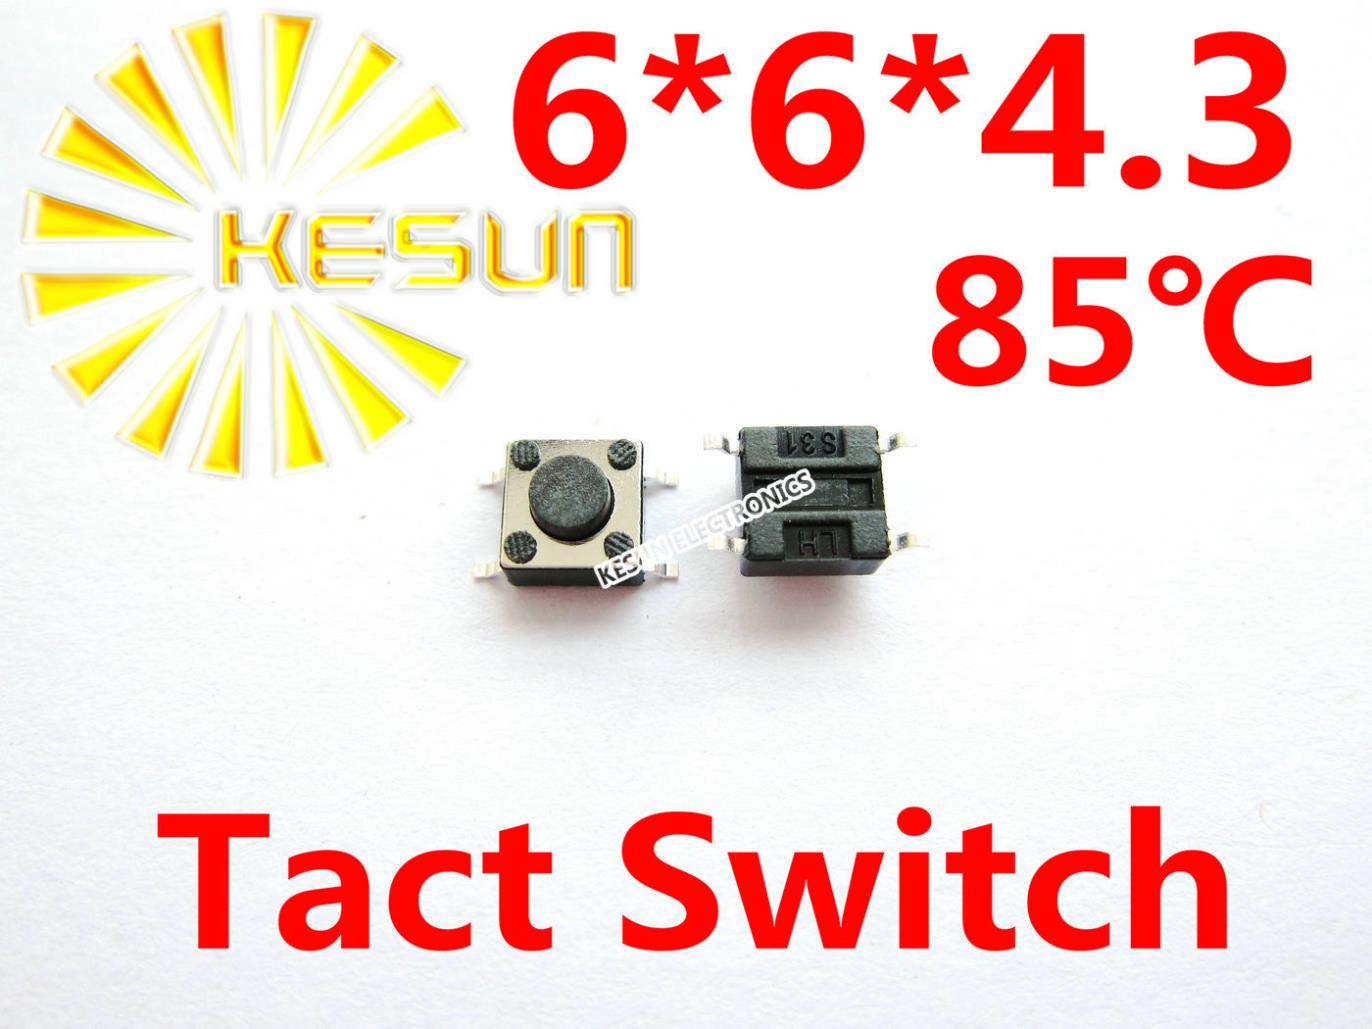 Intellective 1000pcs 6x6x4.3 Smd Tactile Tact Mini Push Button Switch Micro Switch Momentary Electronic Components & Supplies Integrated Circuits